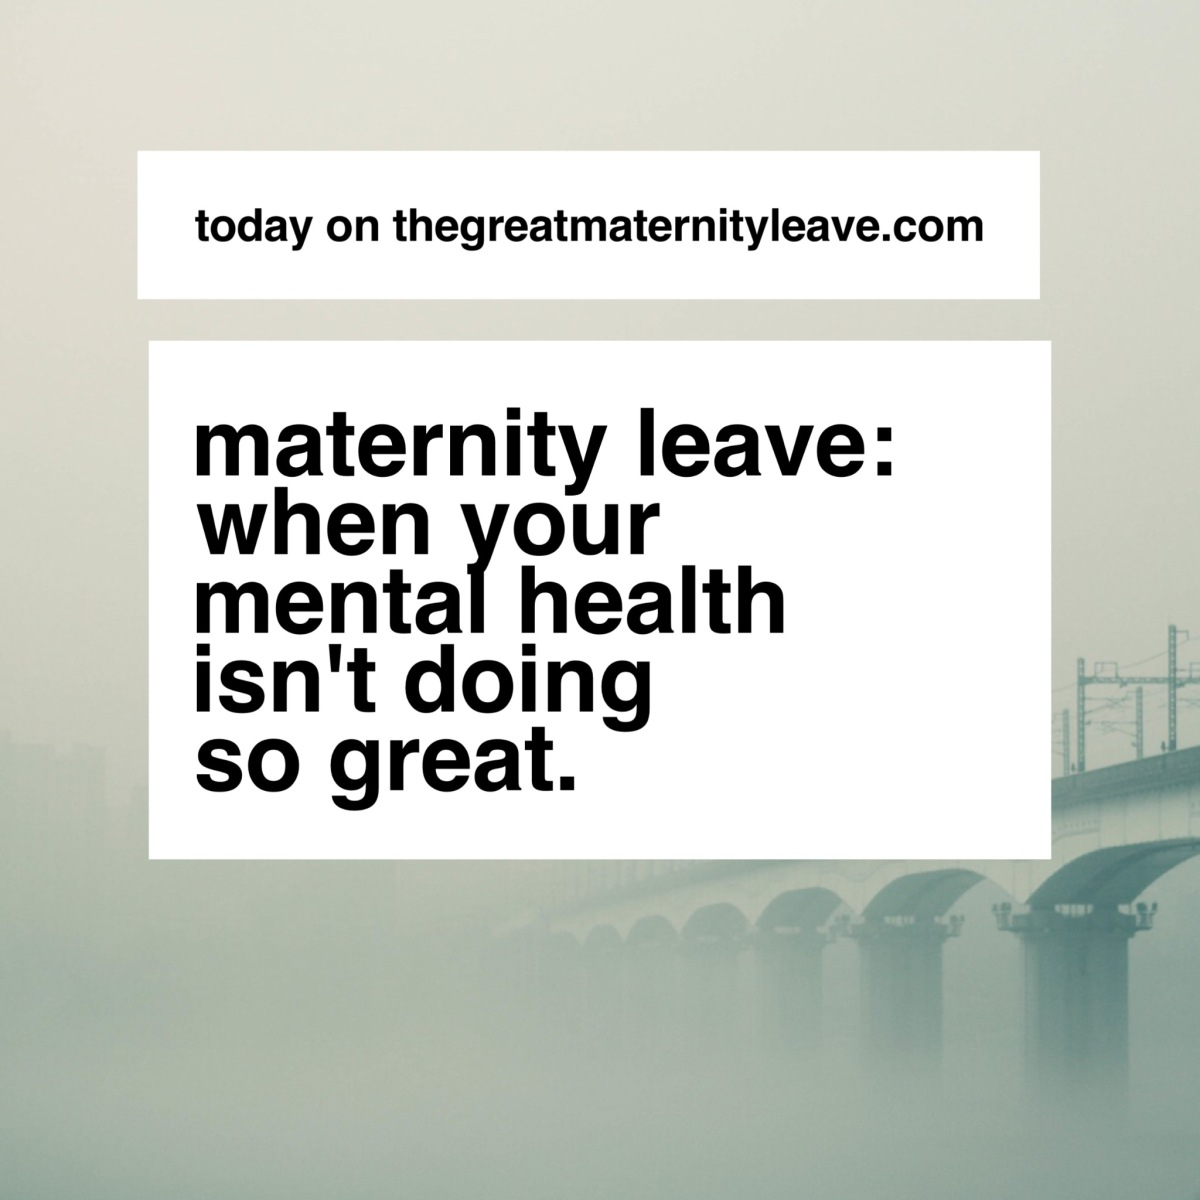 Your Mental Health On Maternity Leave:  What is a Real FunkLike?